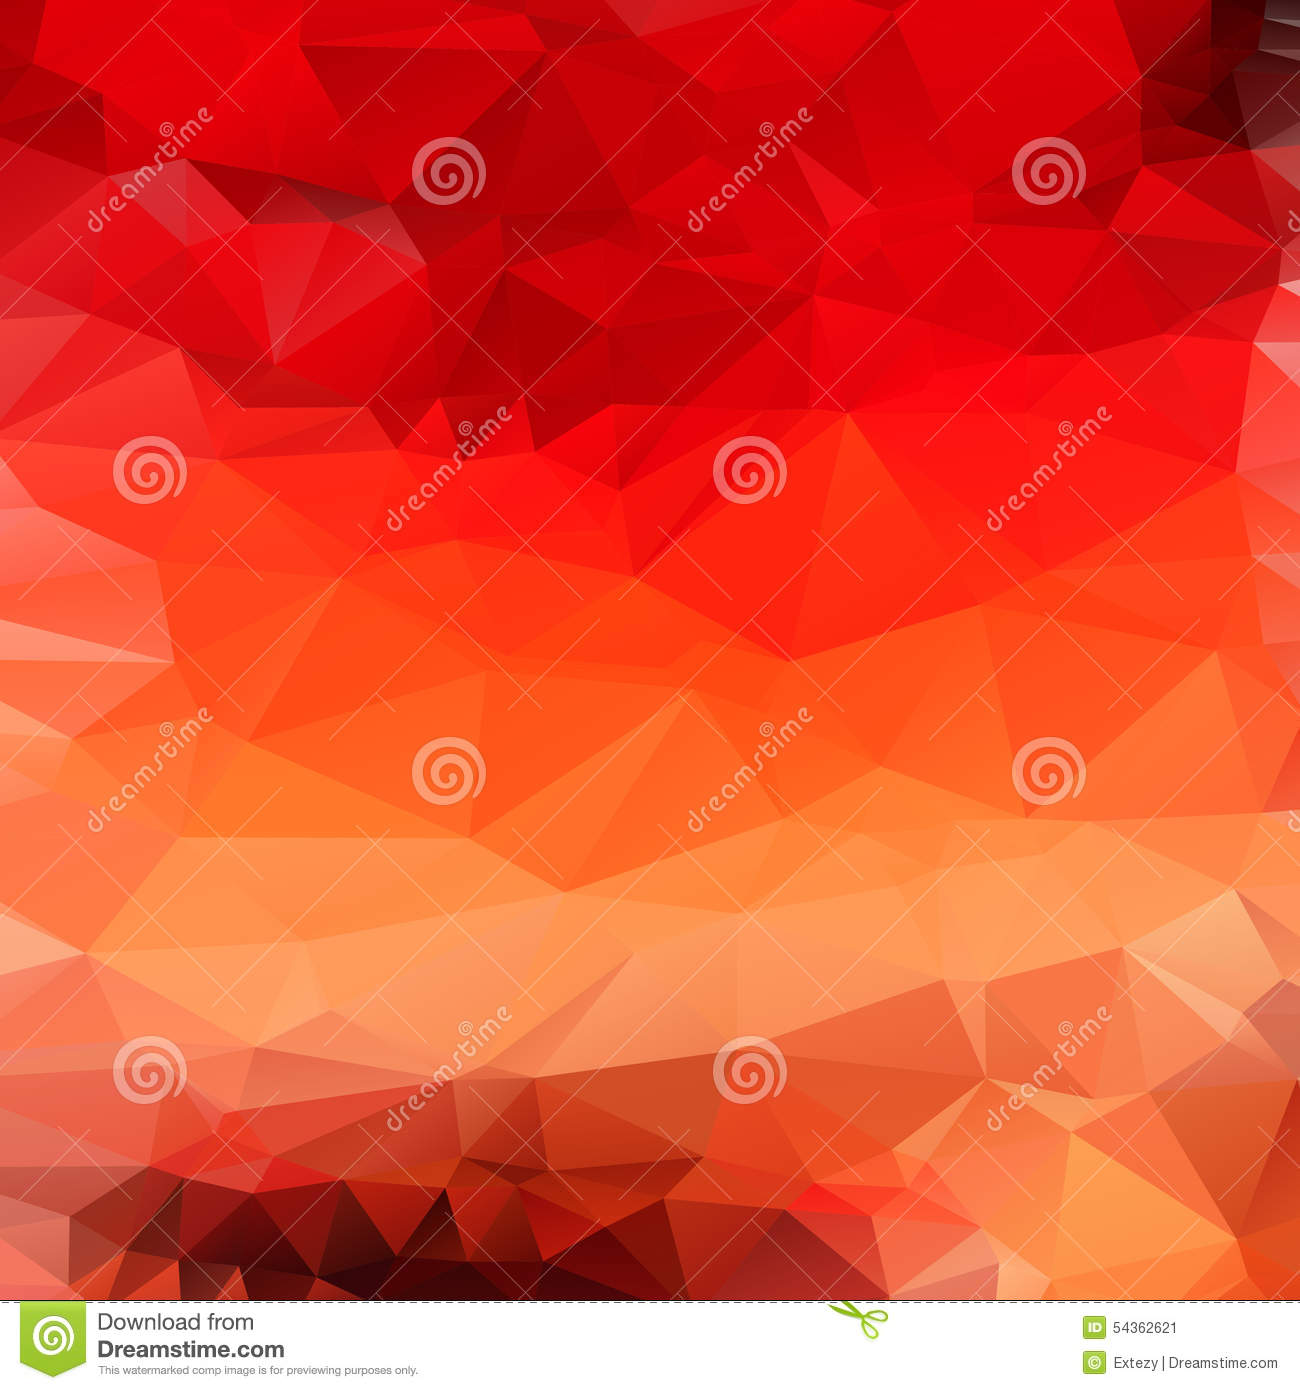 Light orange red abstract polygonal background